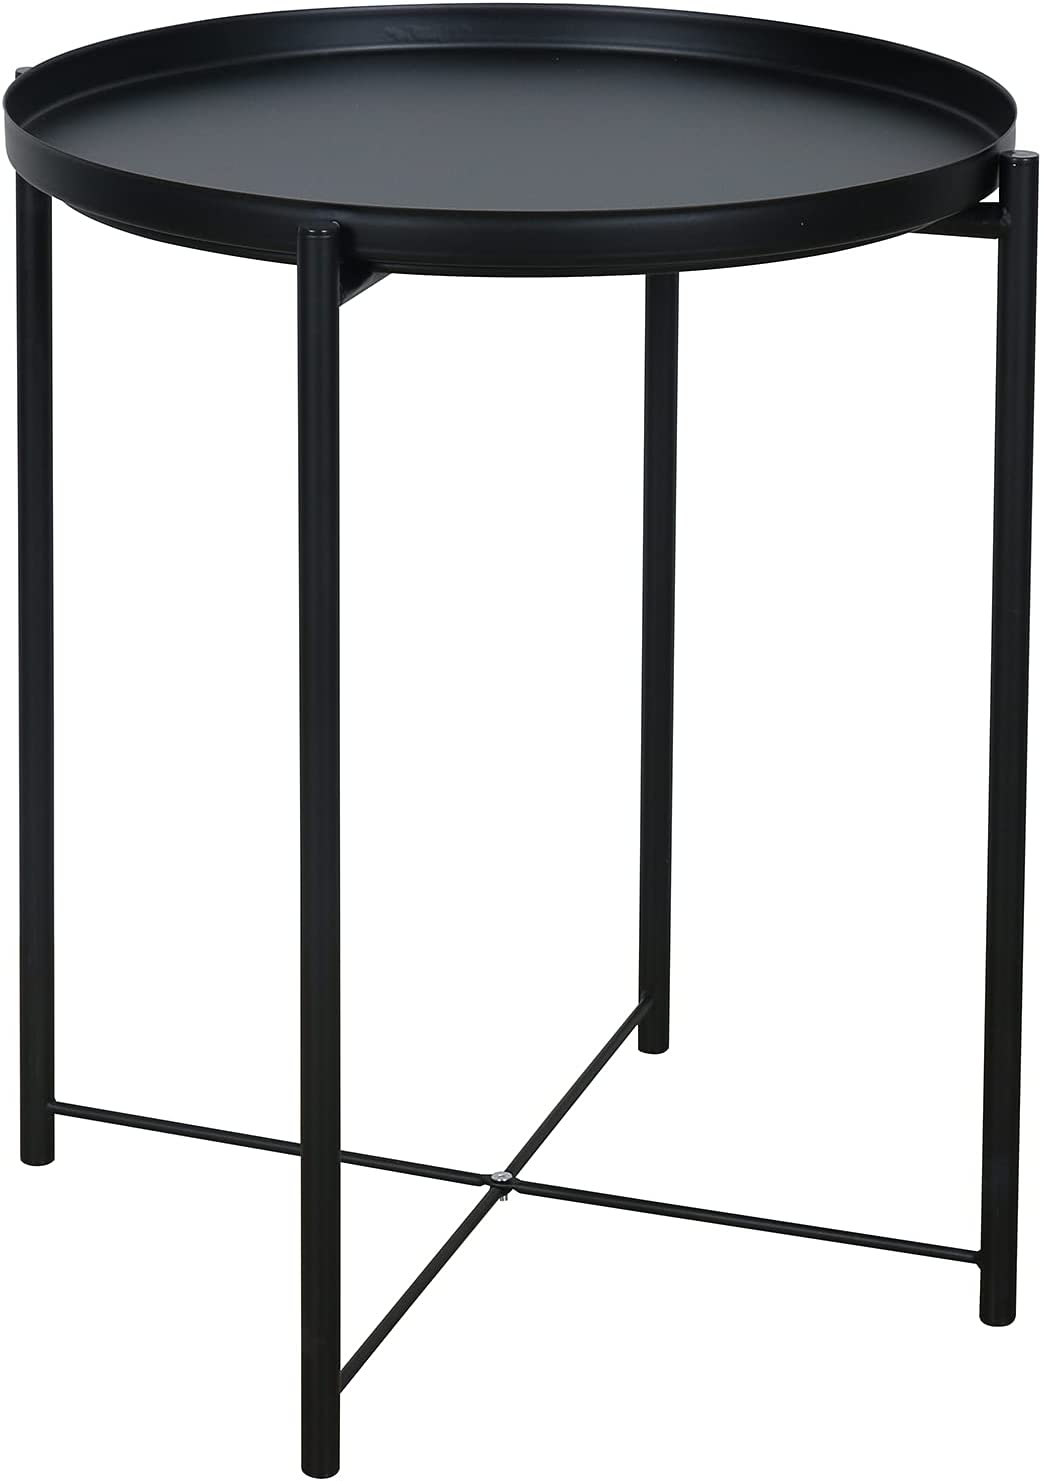 Rainbow Sophia Modern Metal Frame Table Side End Department store Superior Roun with